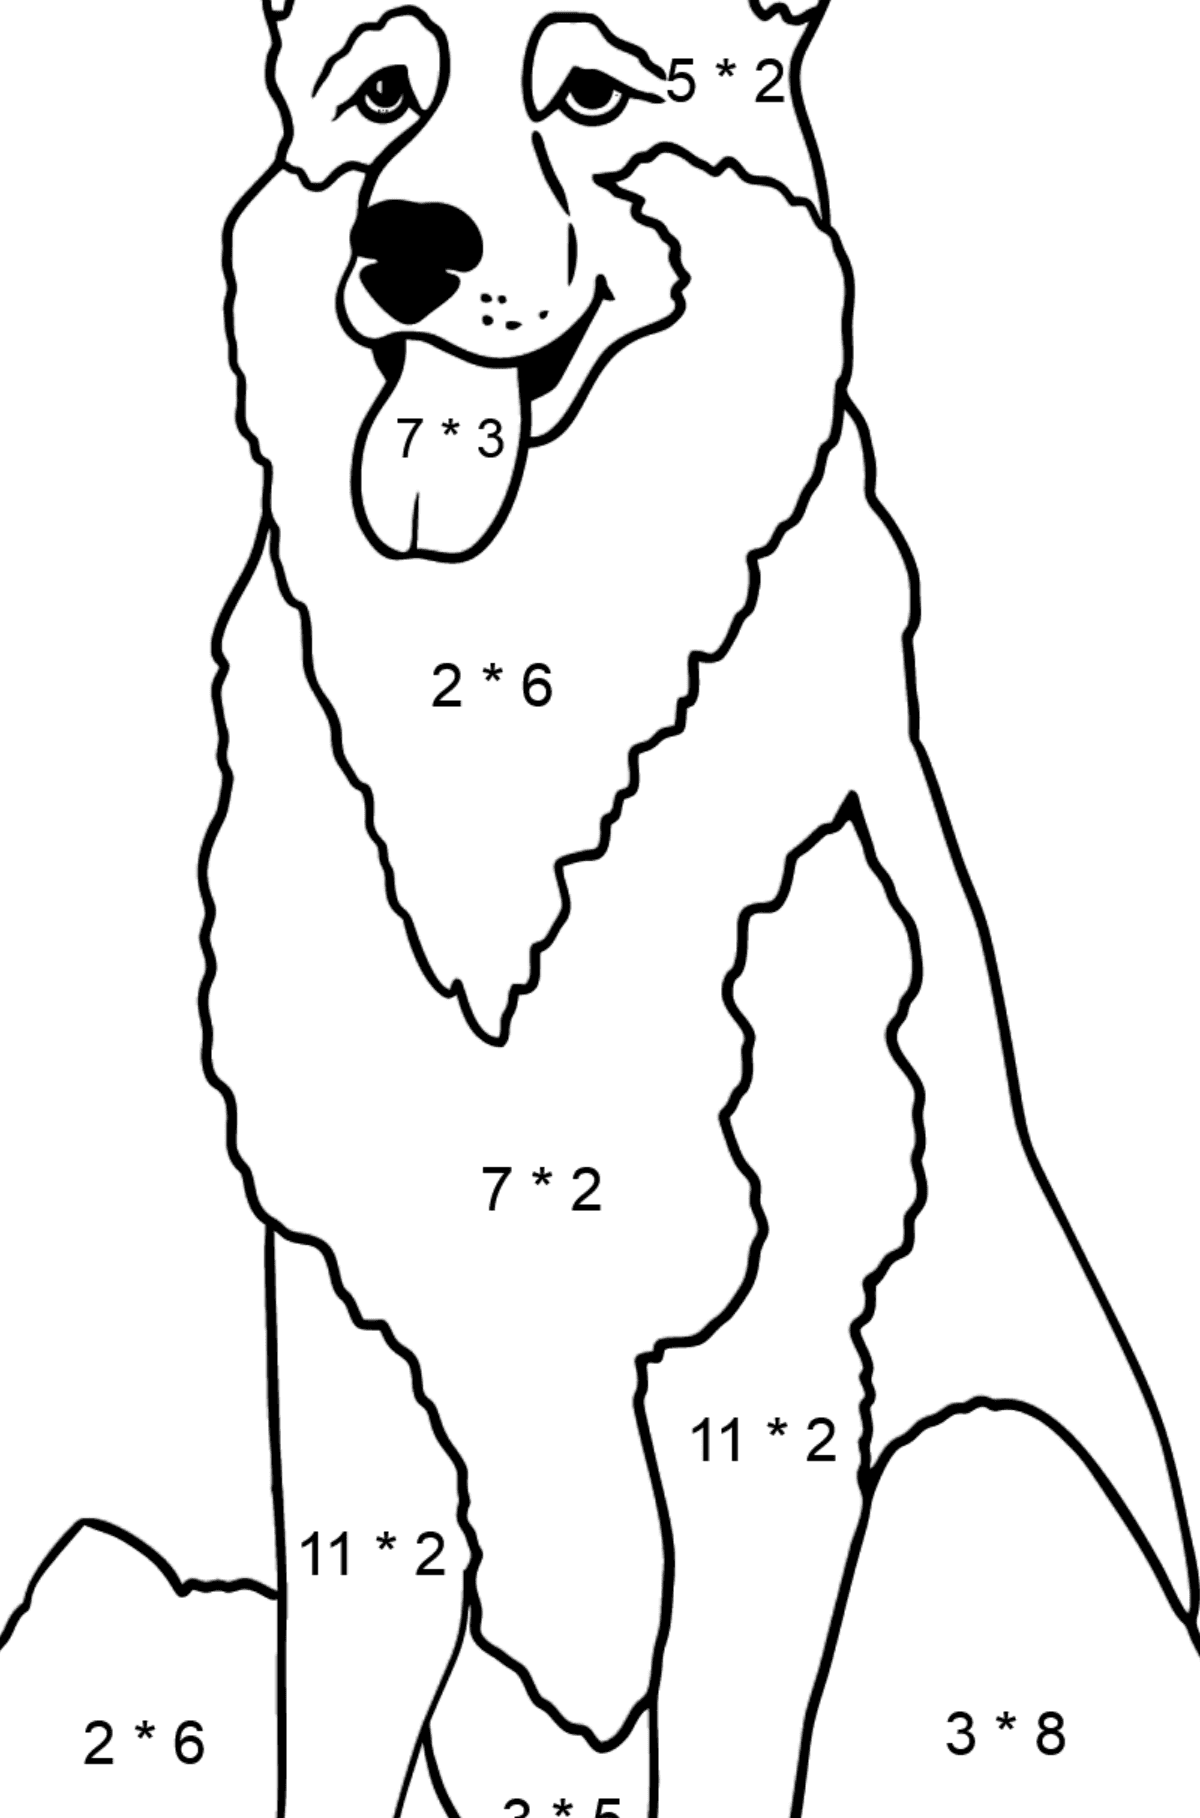 Shepherd coloring page - Math Coloring - Multiplication for Kids